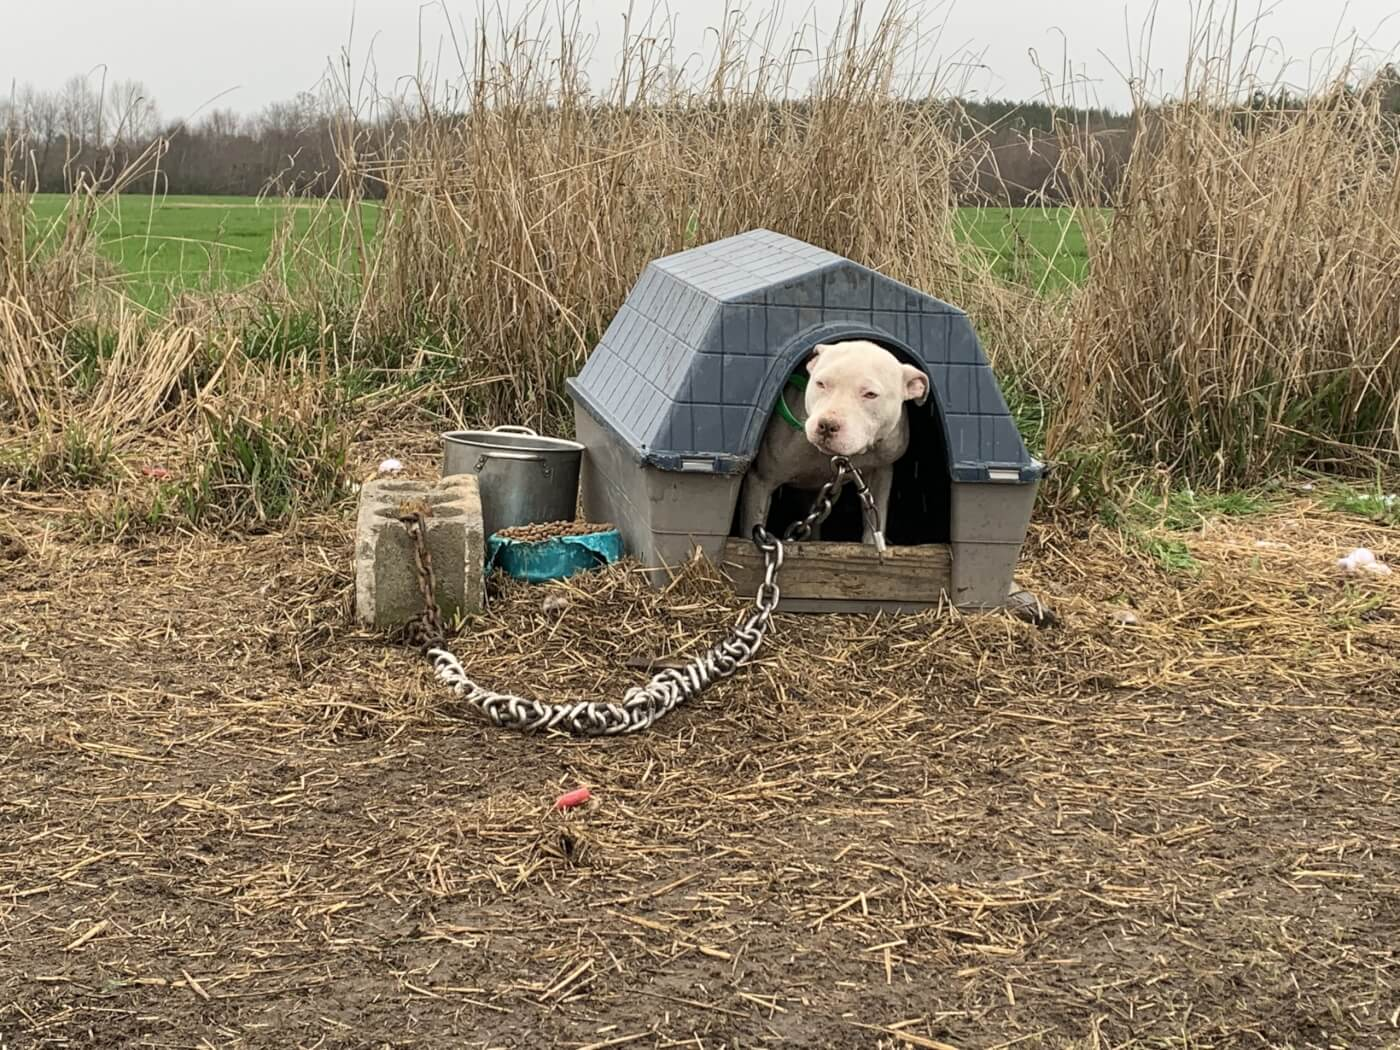 pitbull in plastic dog house with a very heavy looking metal chain